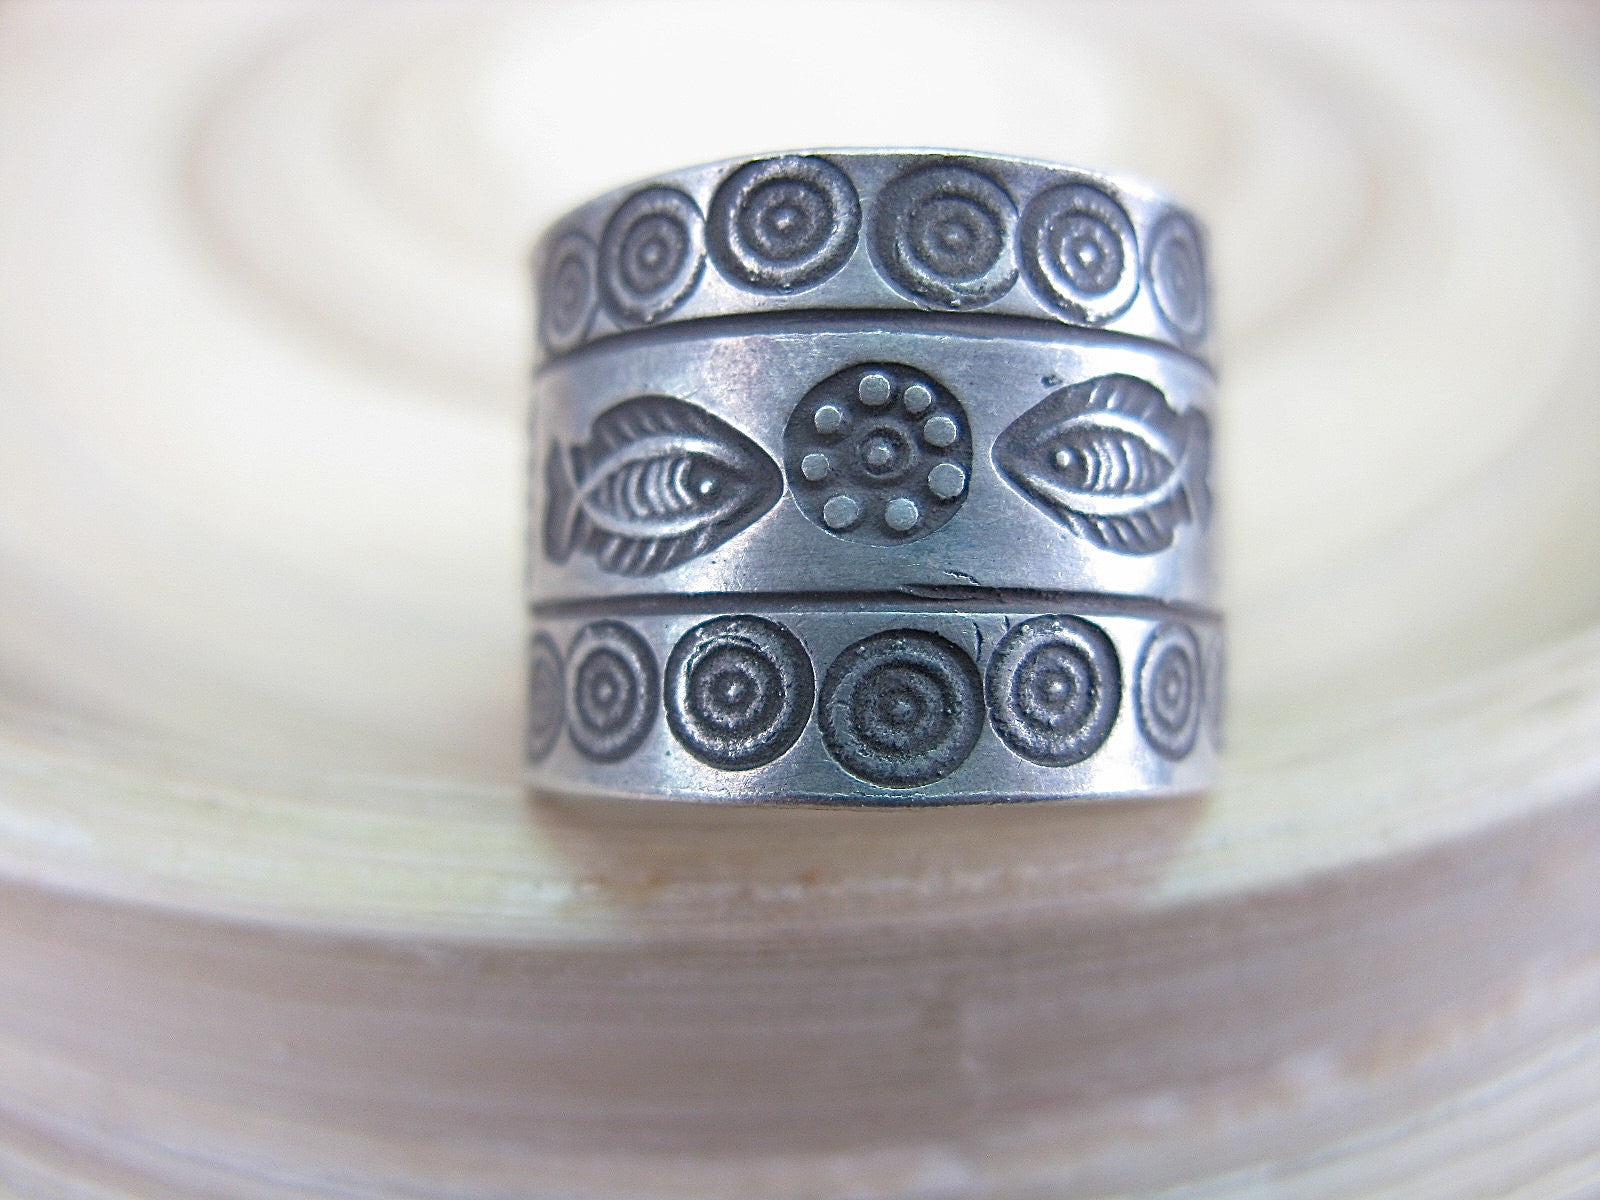 Engrave Fish Tribal Crafted Oxidized 925 Sterling Silver Ring Ring - Faith Owl